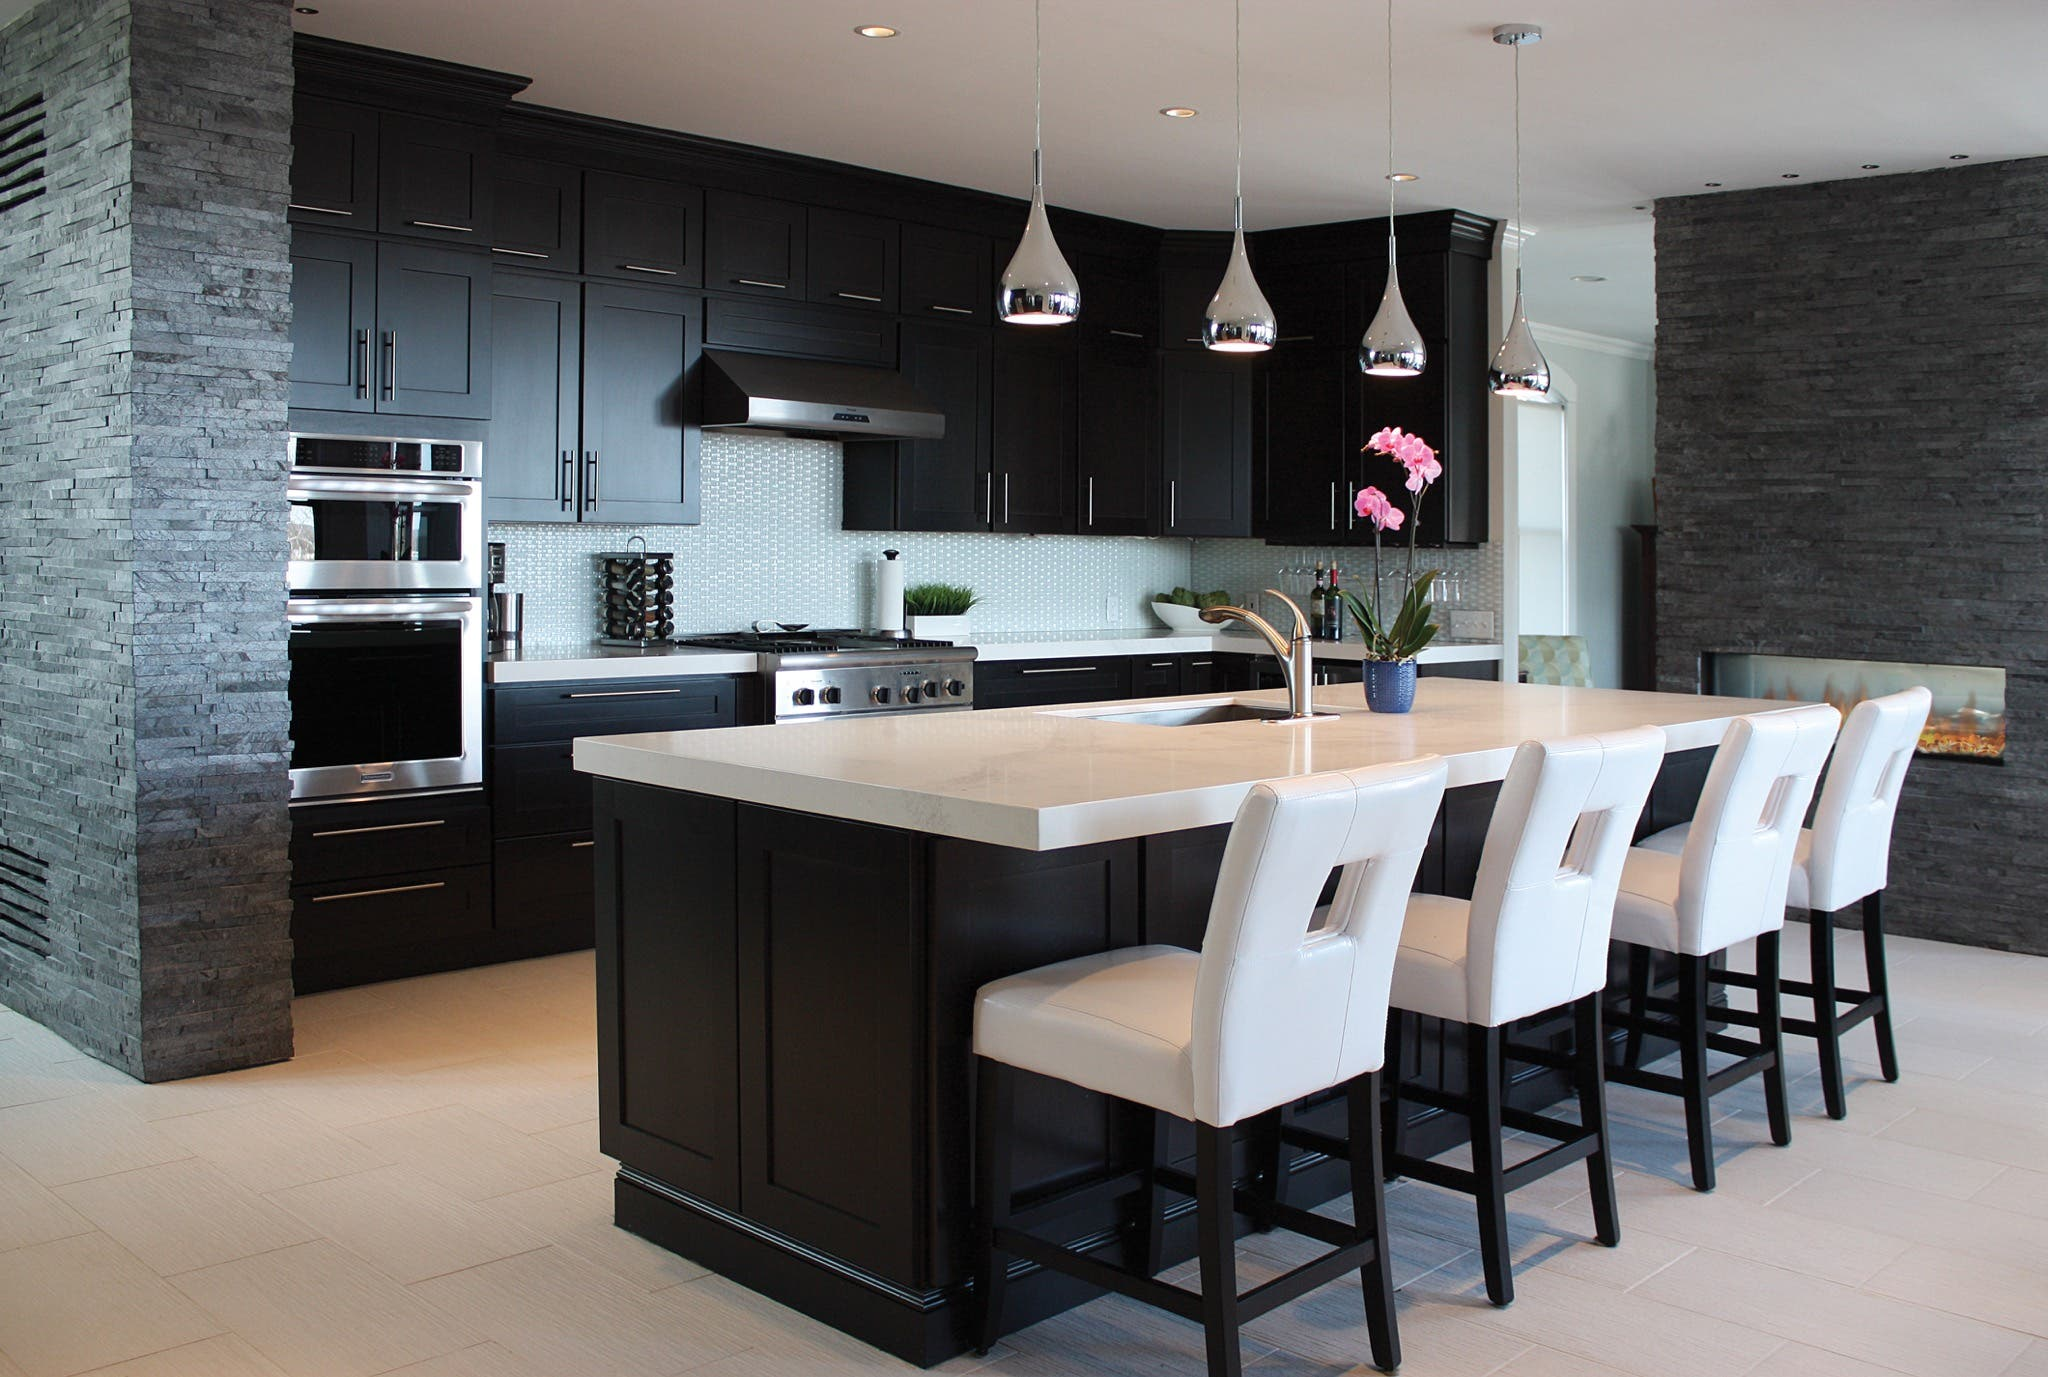 Southcoast Kitchen Designs wins PRISM Silver Award for ...